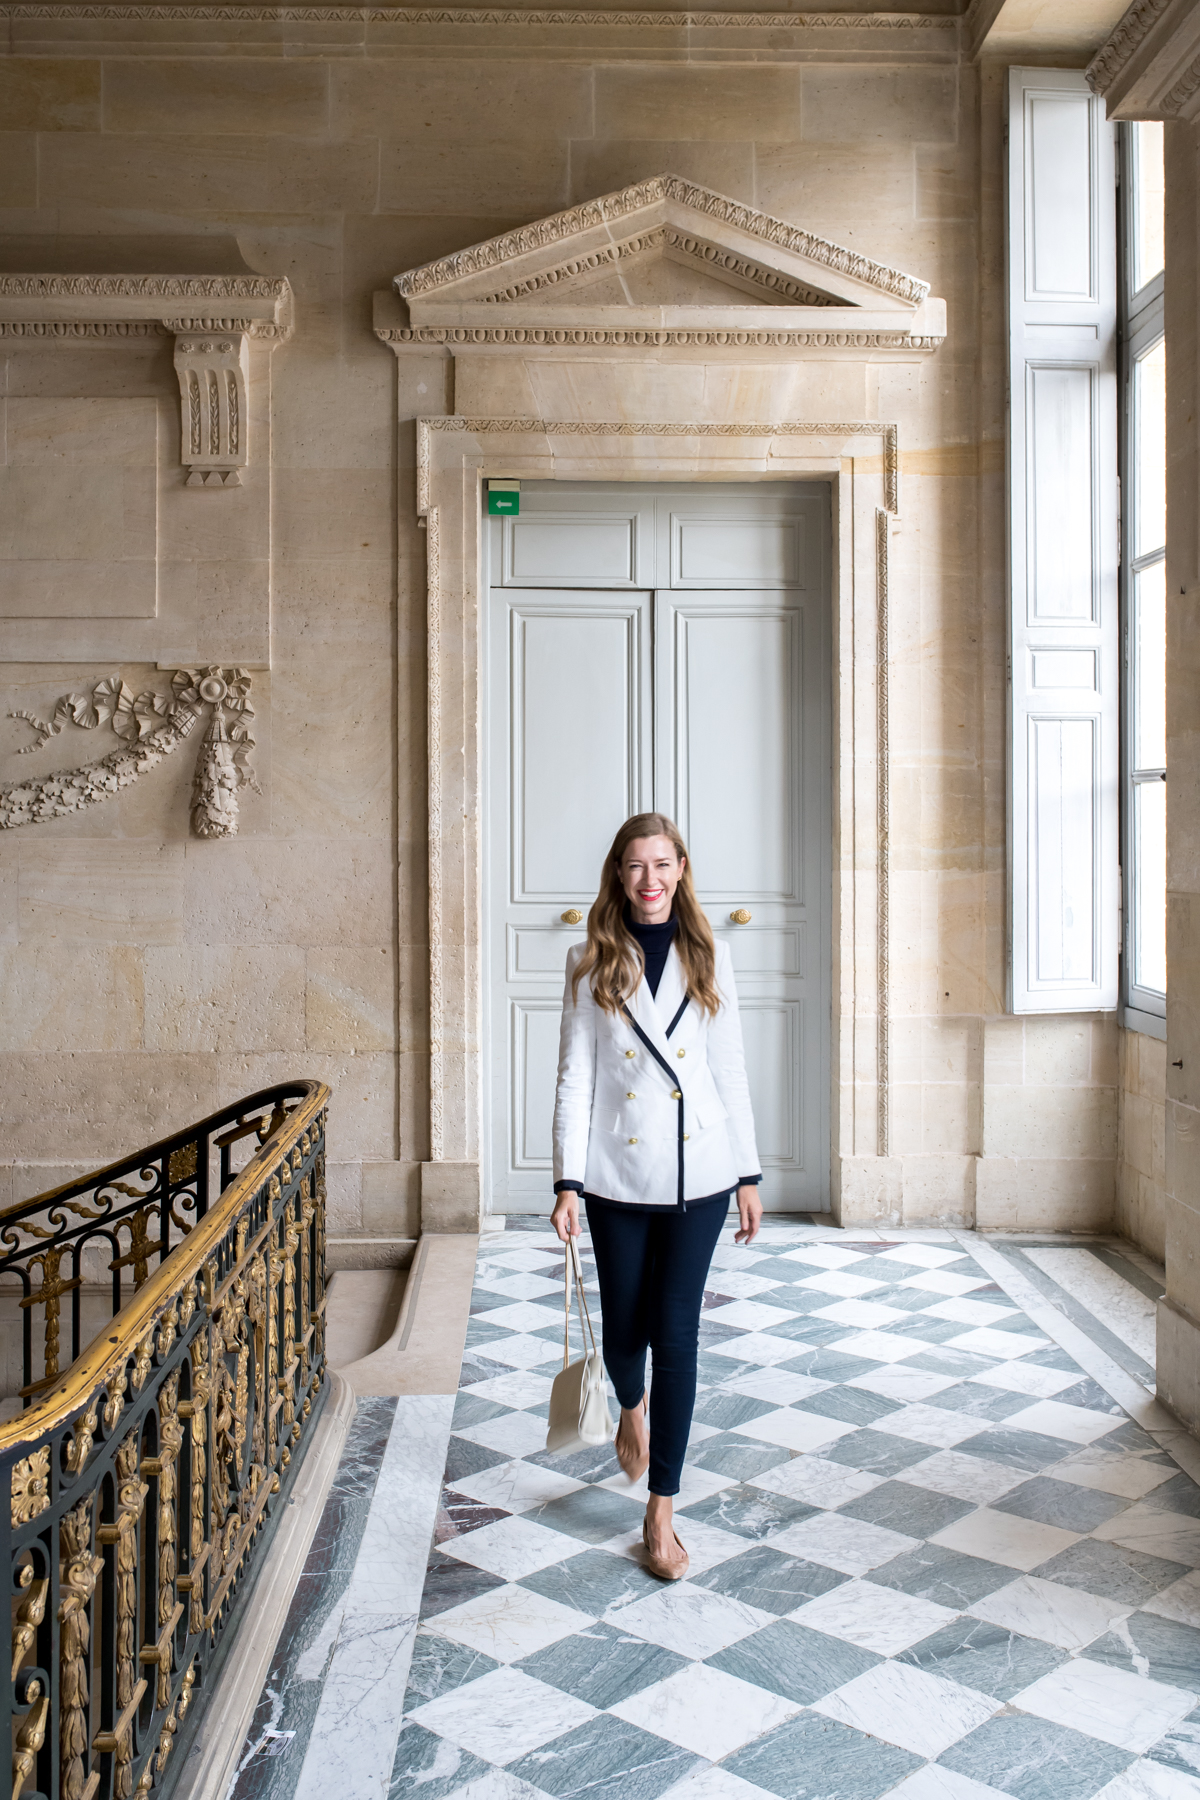 Stacie Flinner How to Visit Versailles Paris-19.jpg